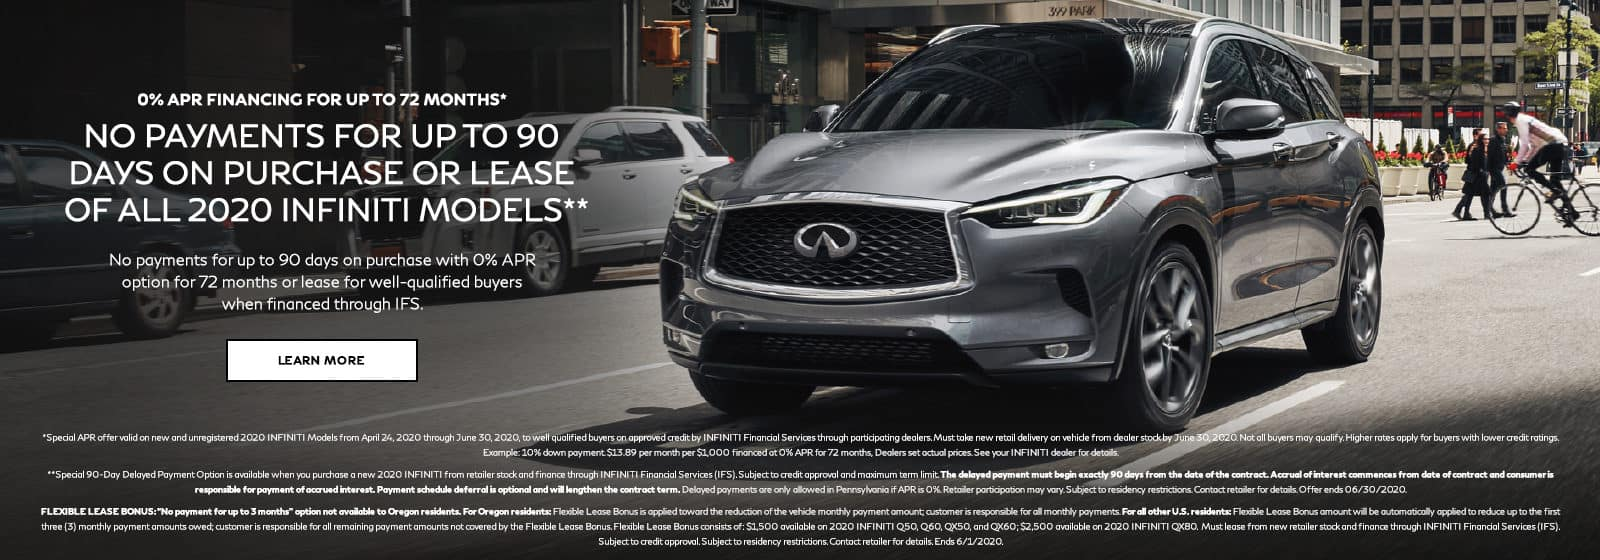 0% APR Financing for 72 months with no payments for 90 days on purchase or lease of all 2020 INFINITI Models. Restrictions may apply. See retailer for complete details. Image of a 2020 QX50 driving down a busy street